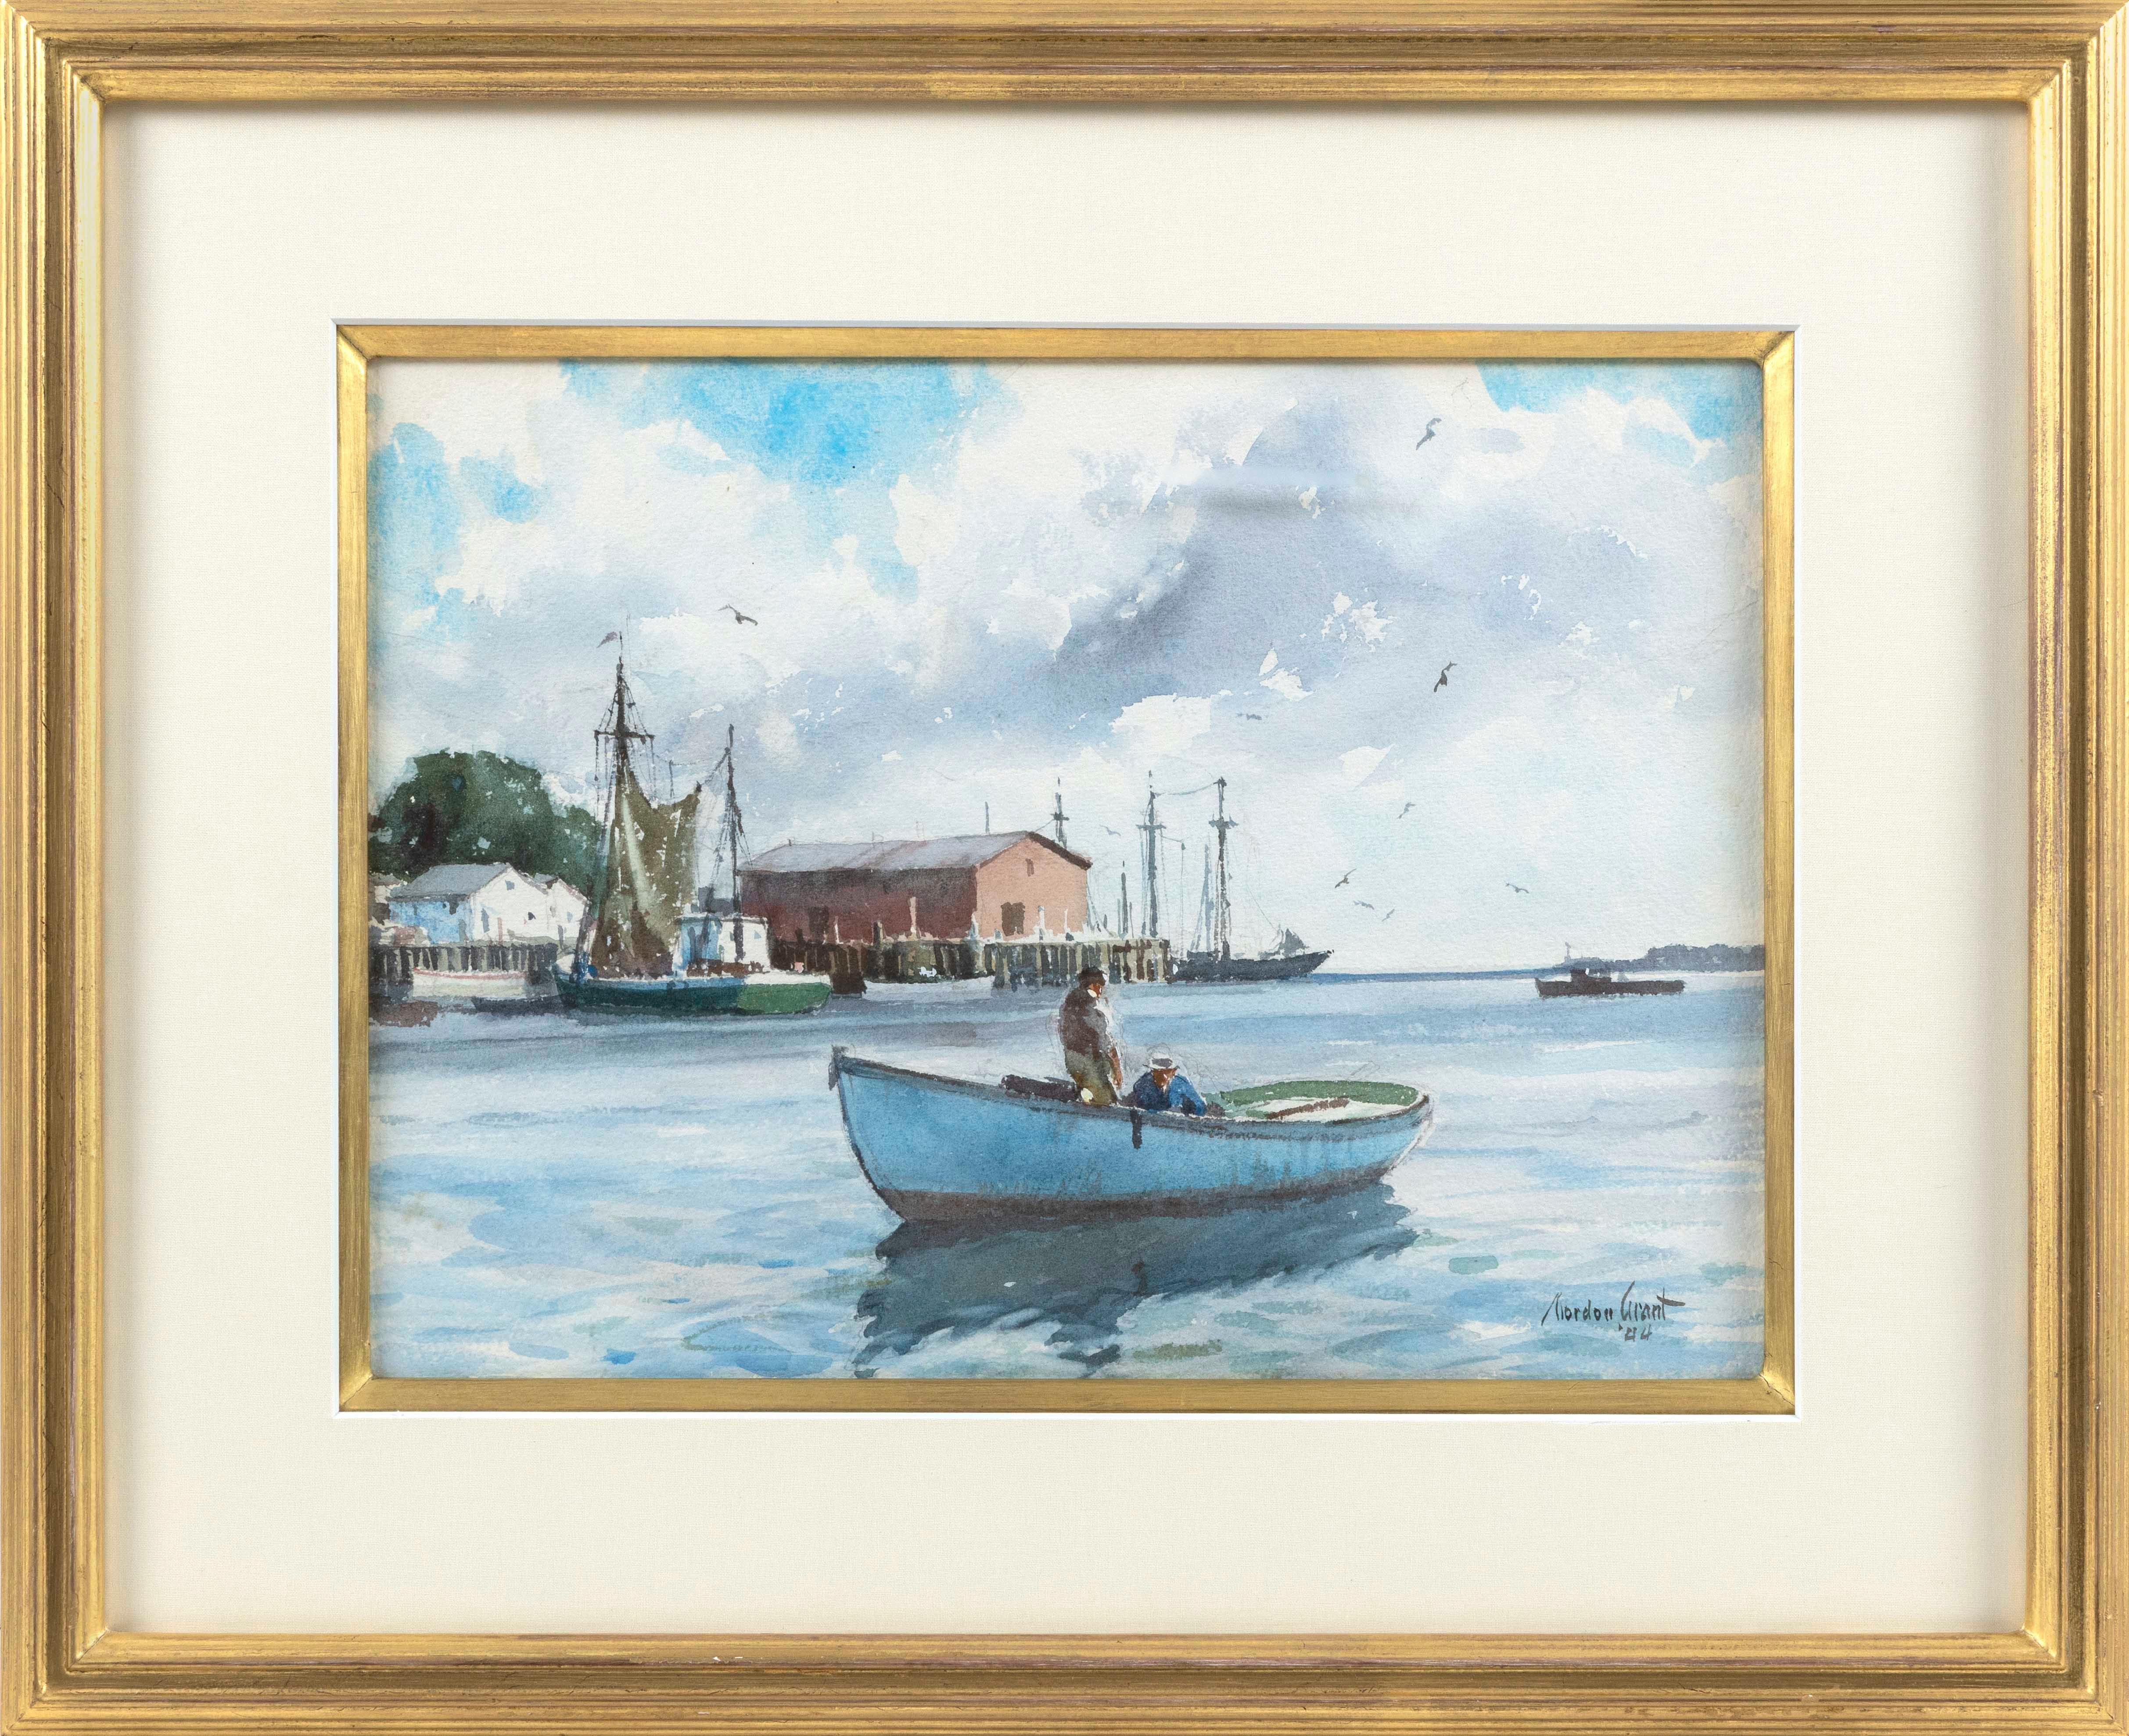 GORDON HOPE GRANT, New York/California/United Kingdom, 1875-1962, Harbor scene with men in a fishing dory., Watercolor on paper, 11....